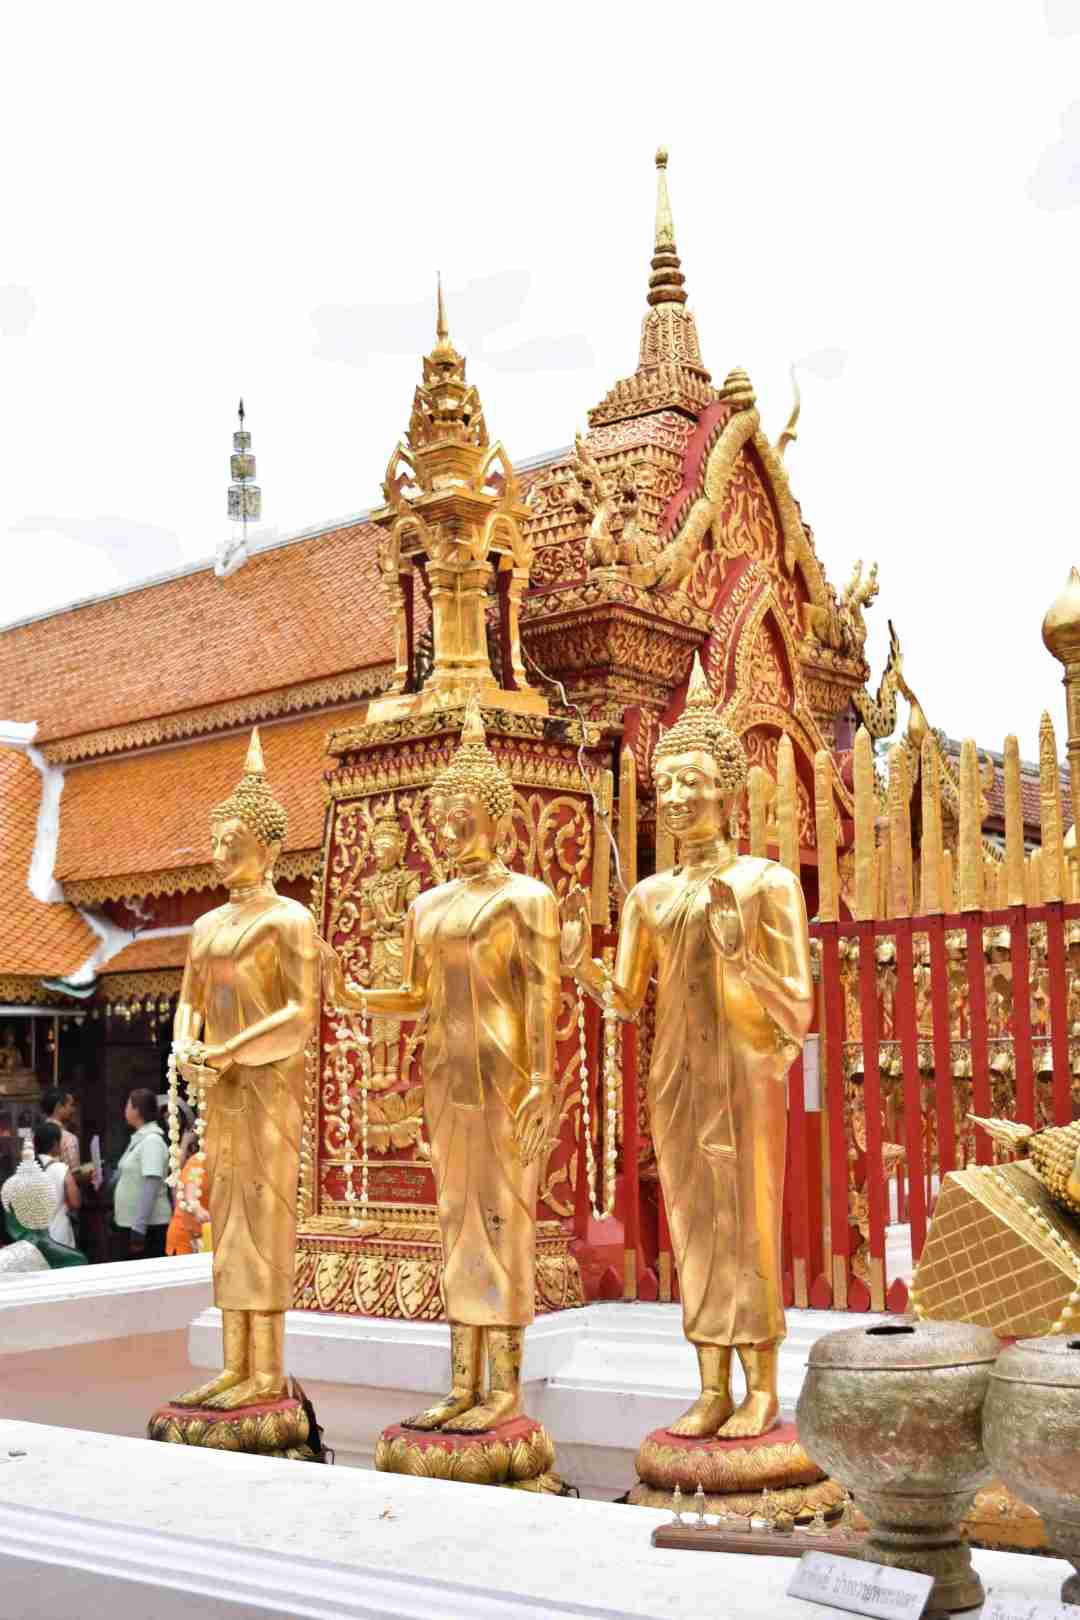 How To Spend 3 Days In Chiang Mai, Thailand